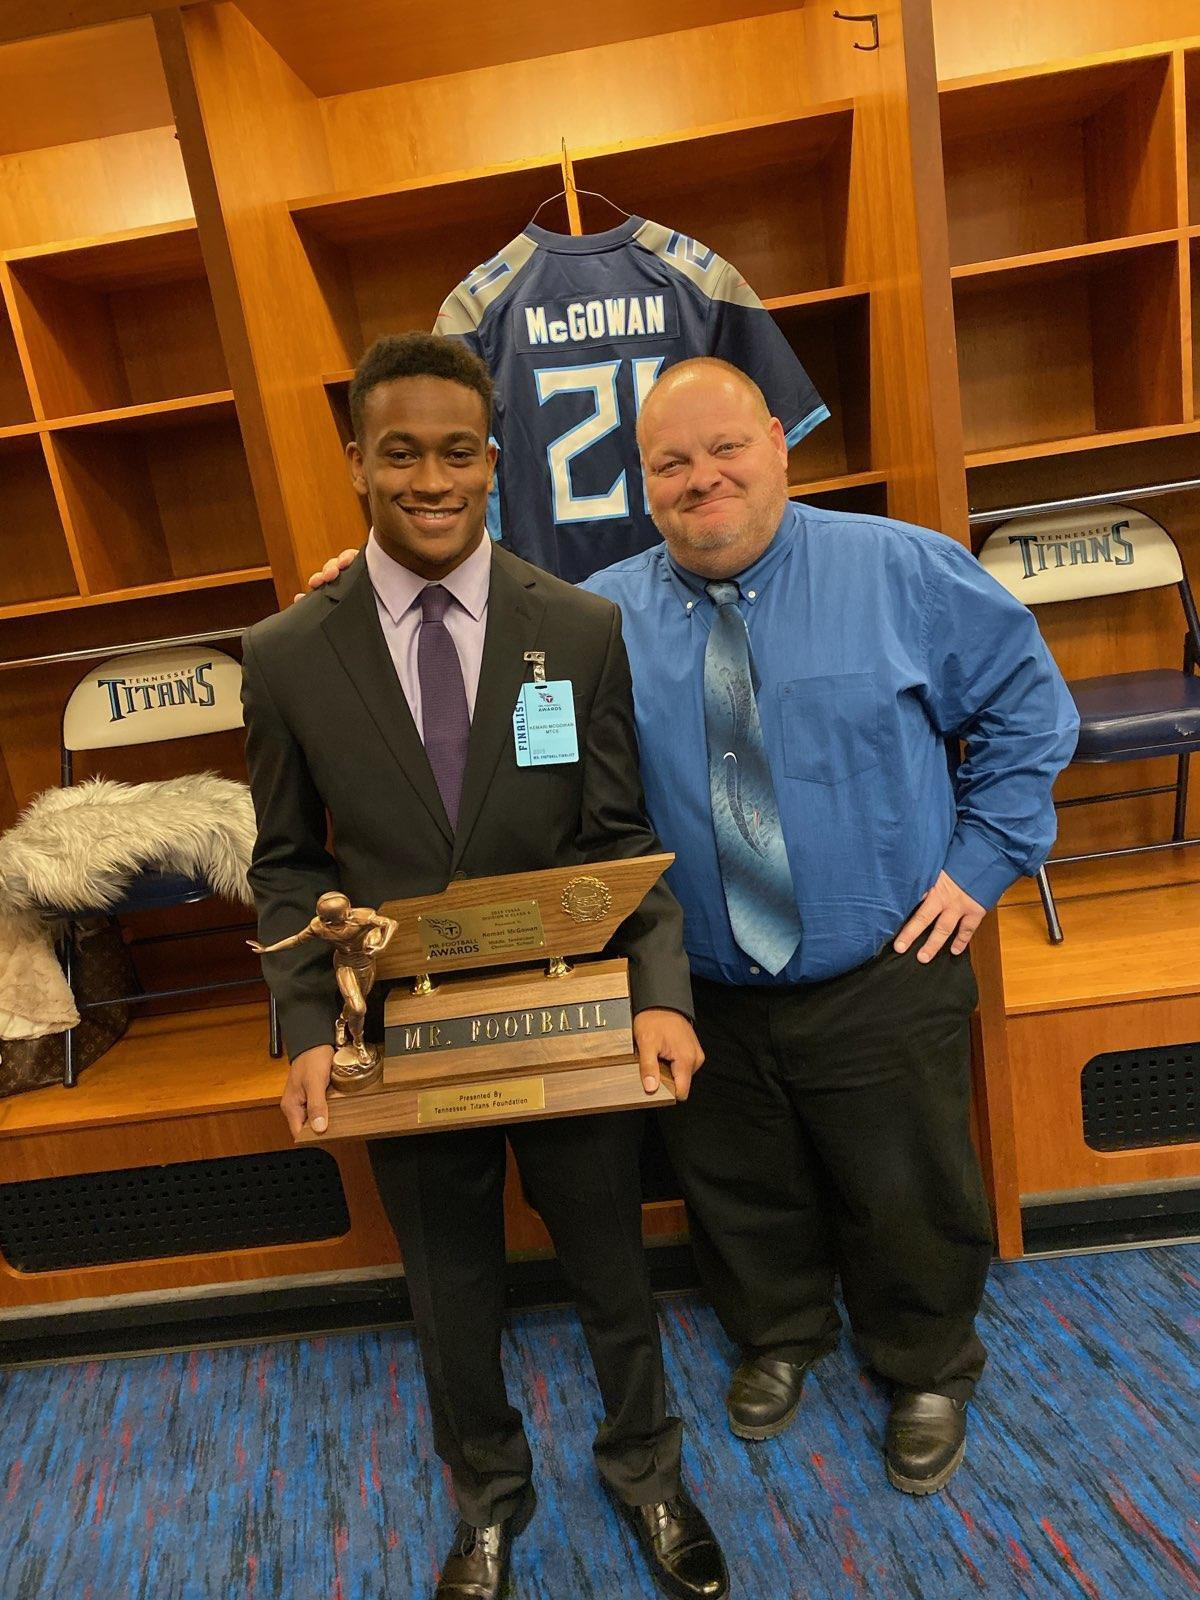 MTCS' McGowan wins Tennessee Titans Mr. Football Award